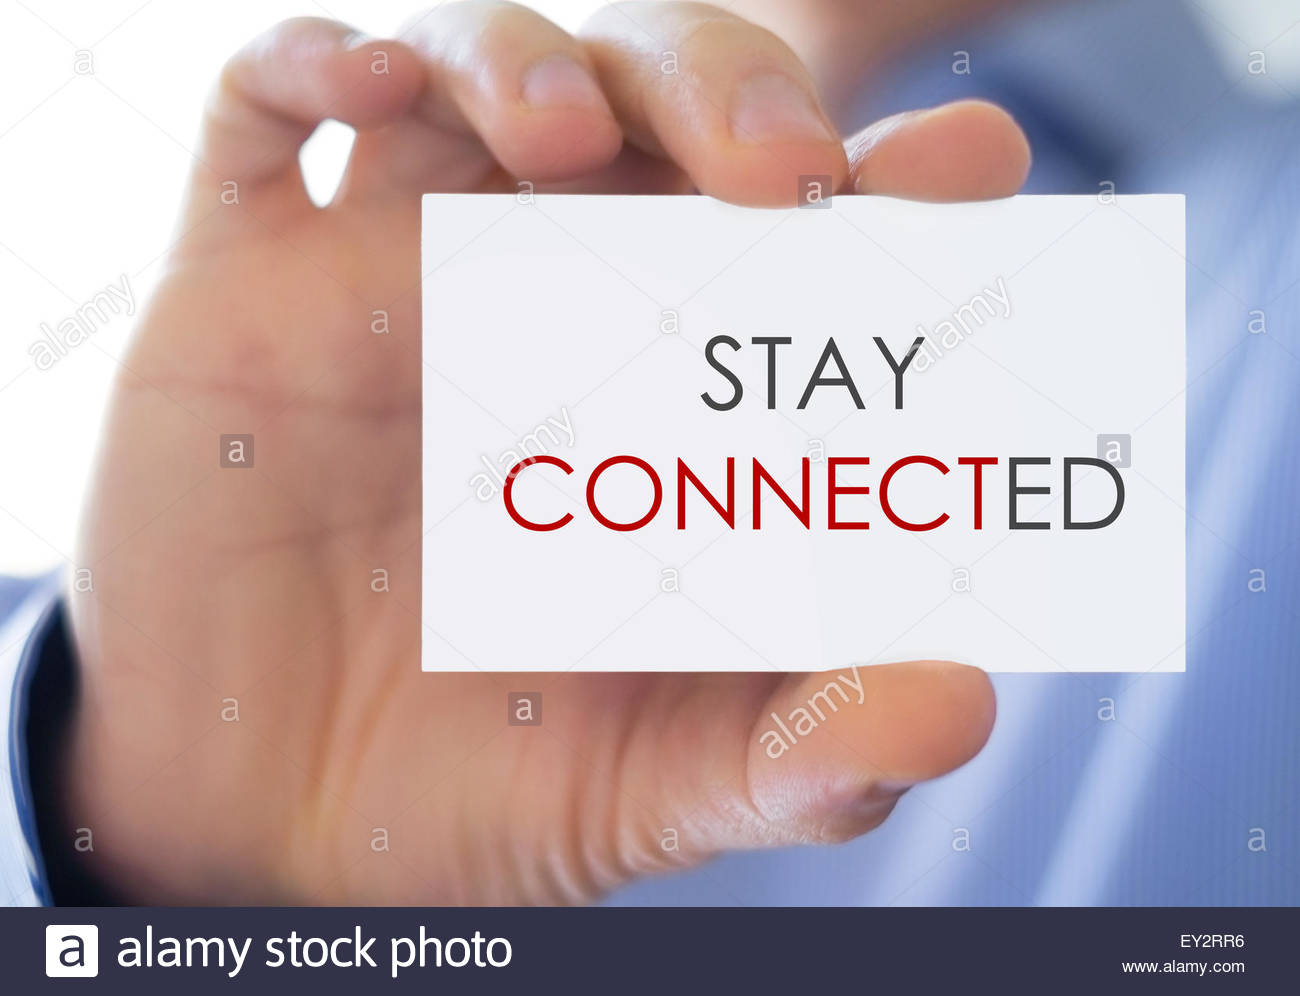 Stay Connected - Stock Image